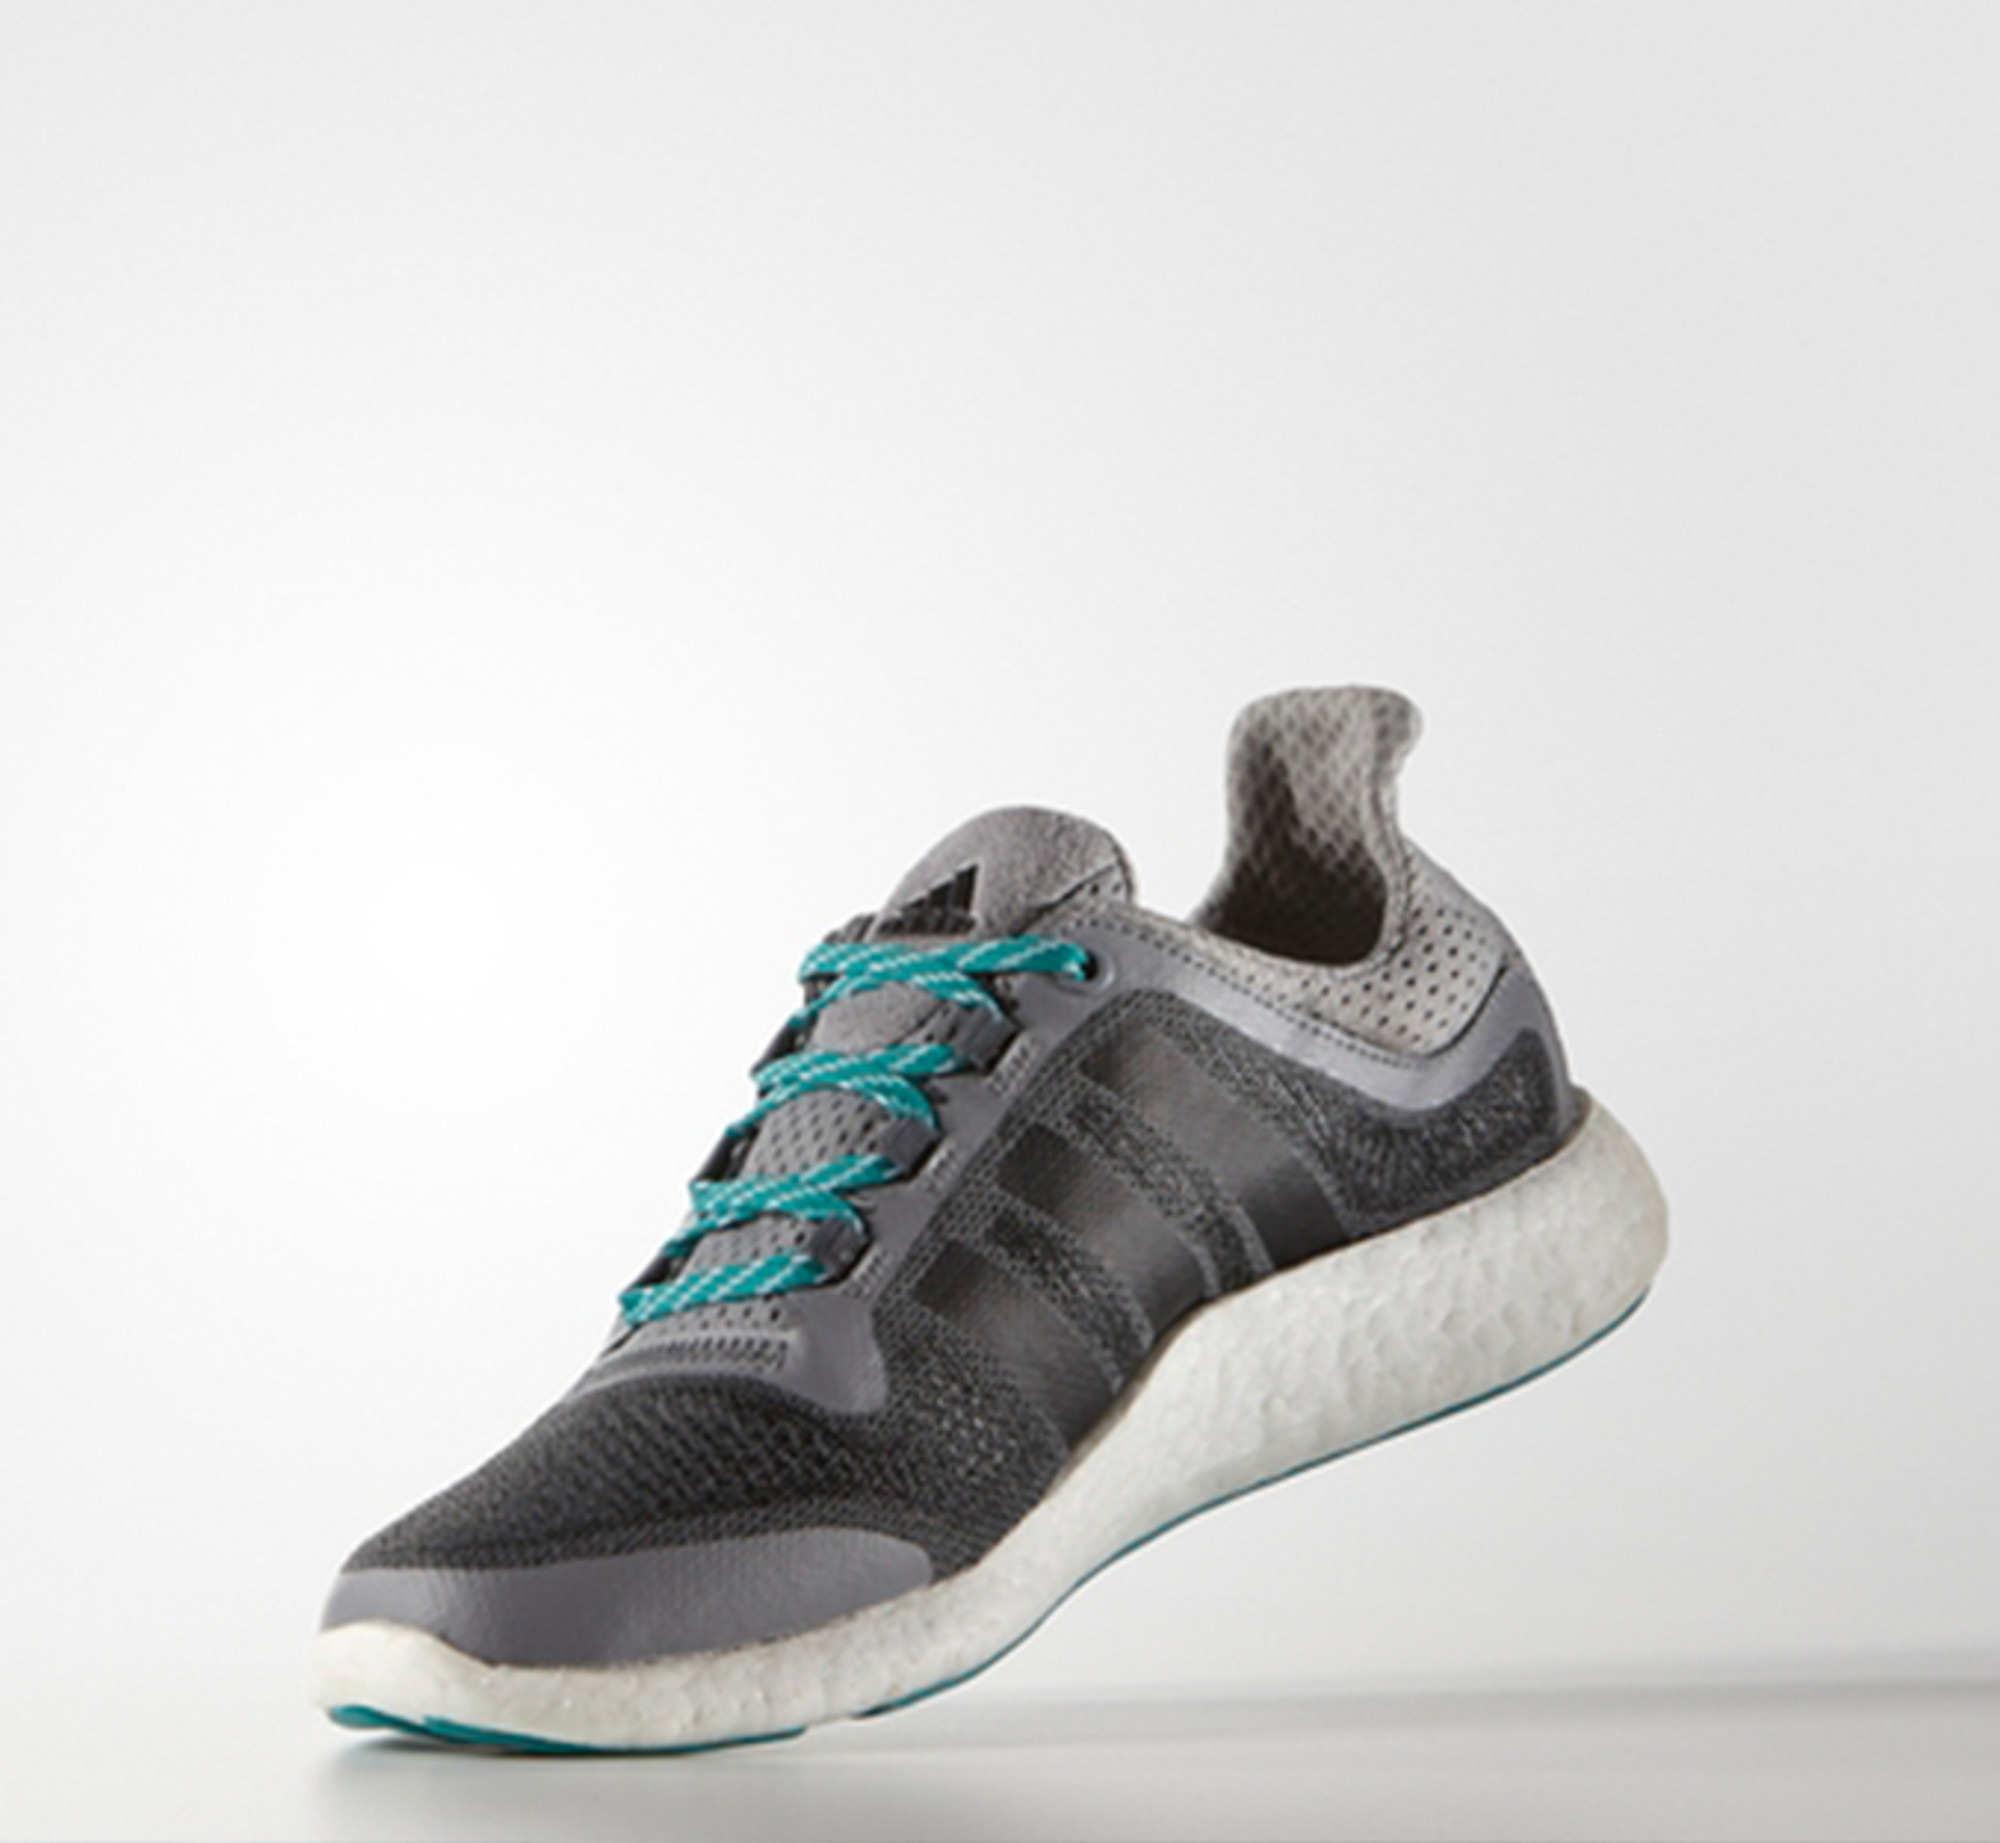 Factory Outlet Adidas Performance Pure Boost 2 M Green Mens